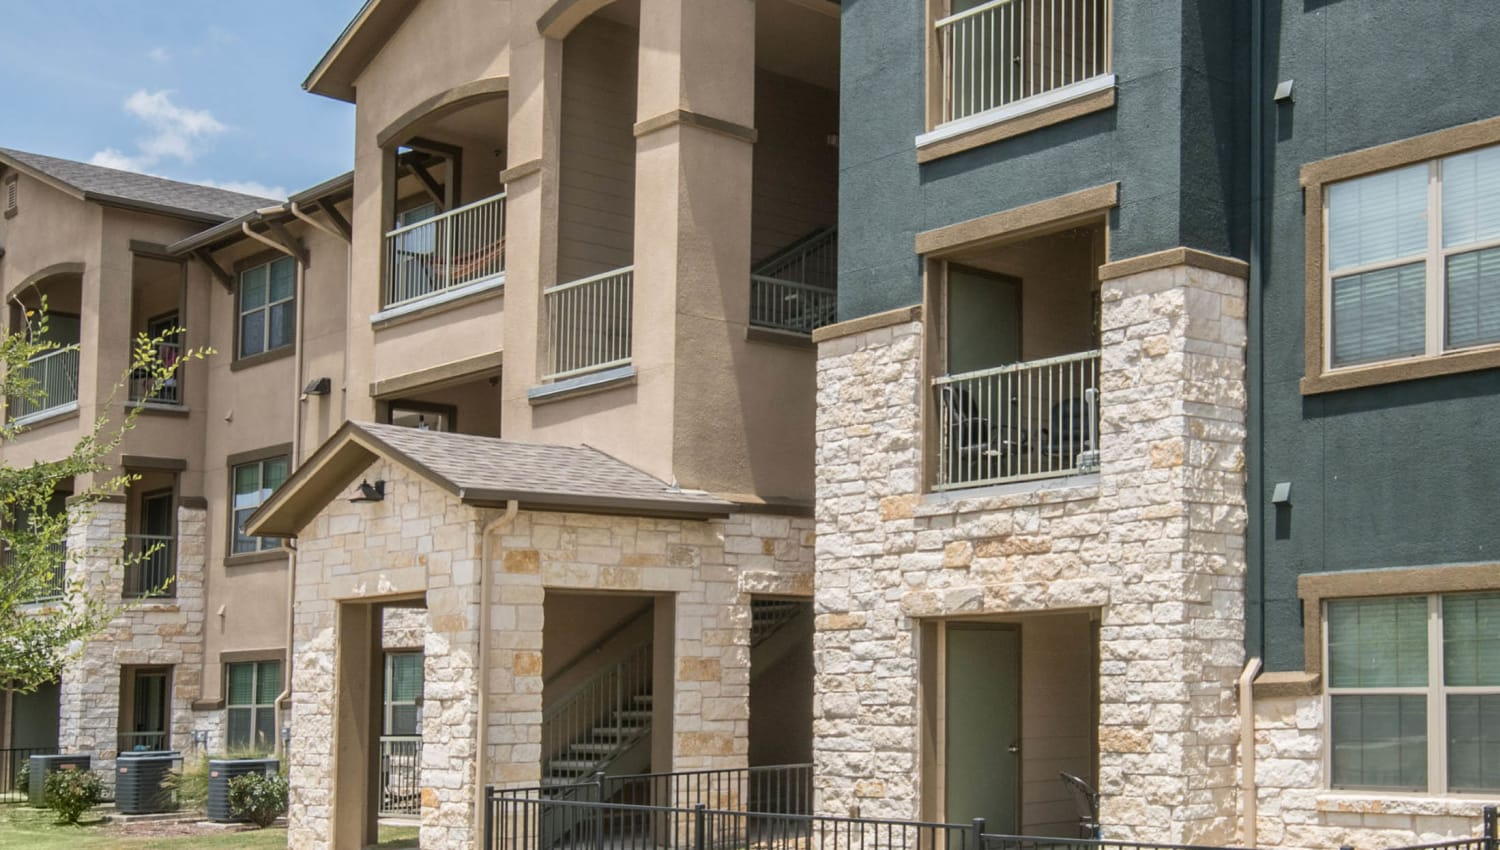 Exterior view of resident buildings at Carrington Oaks in Buda, Texas